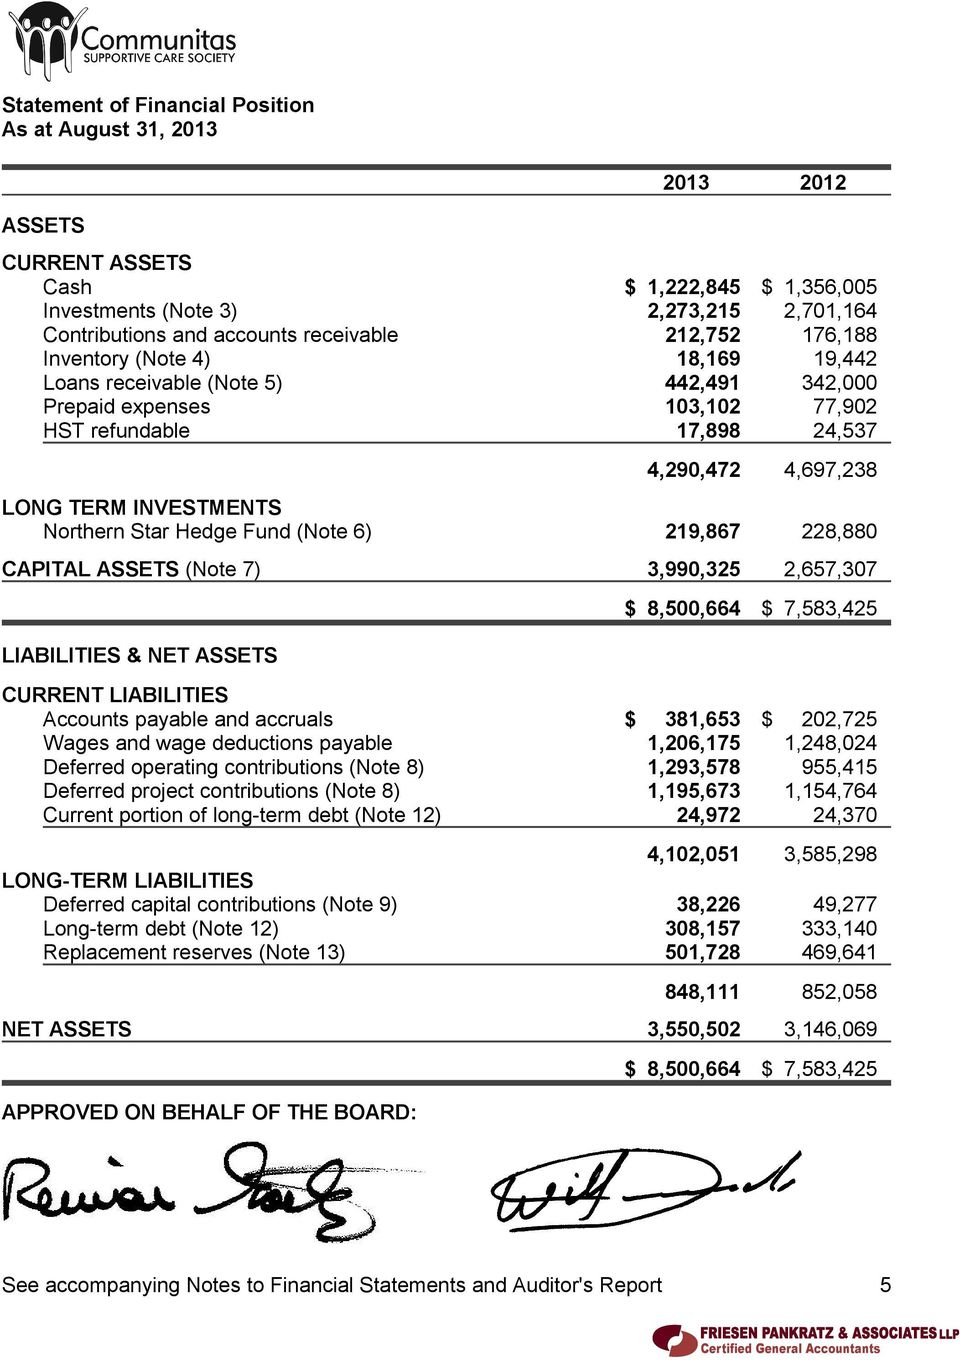 Northern Star Hedge Fund (Note 6) 219,867 228,880 CAPITAL ASSETS (Note 7) 3,990,325 2,657,307 LIABILITIES & NET ASSETS $ 8,500,664 $ 7,583,425 CURRENT LIABILITIES Accounts payable and accruals $